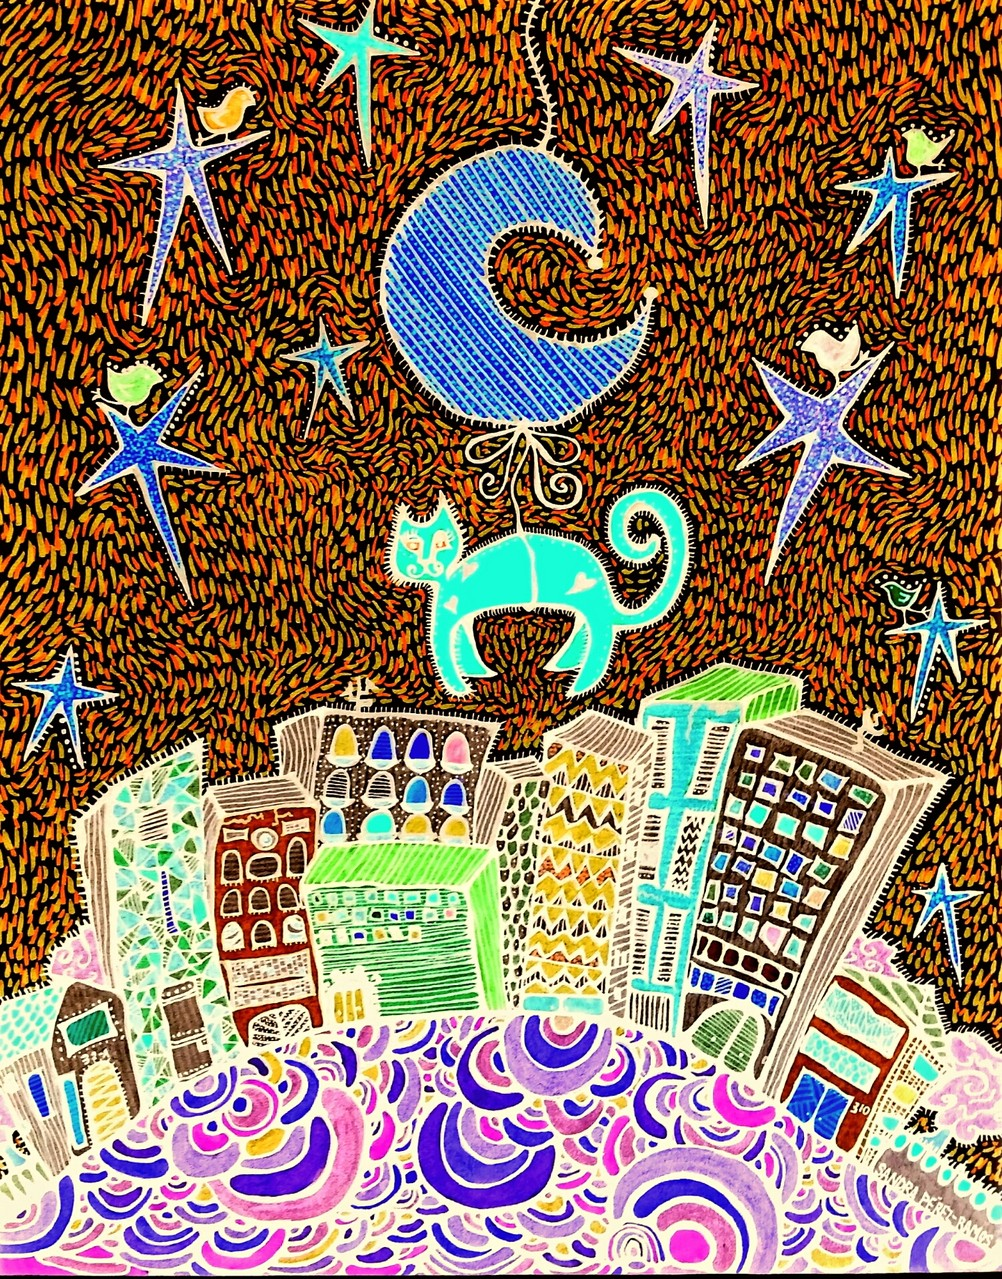 City Cat © 2014 Sandra Pérez Ramos (Mixed media).